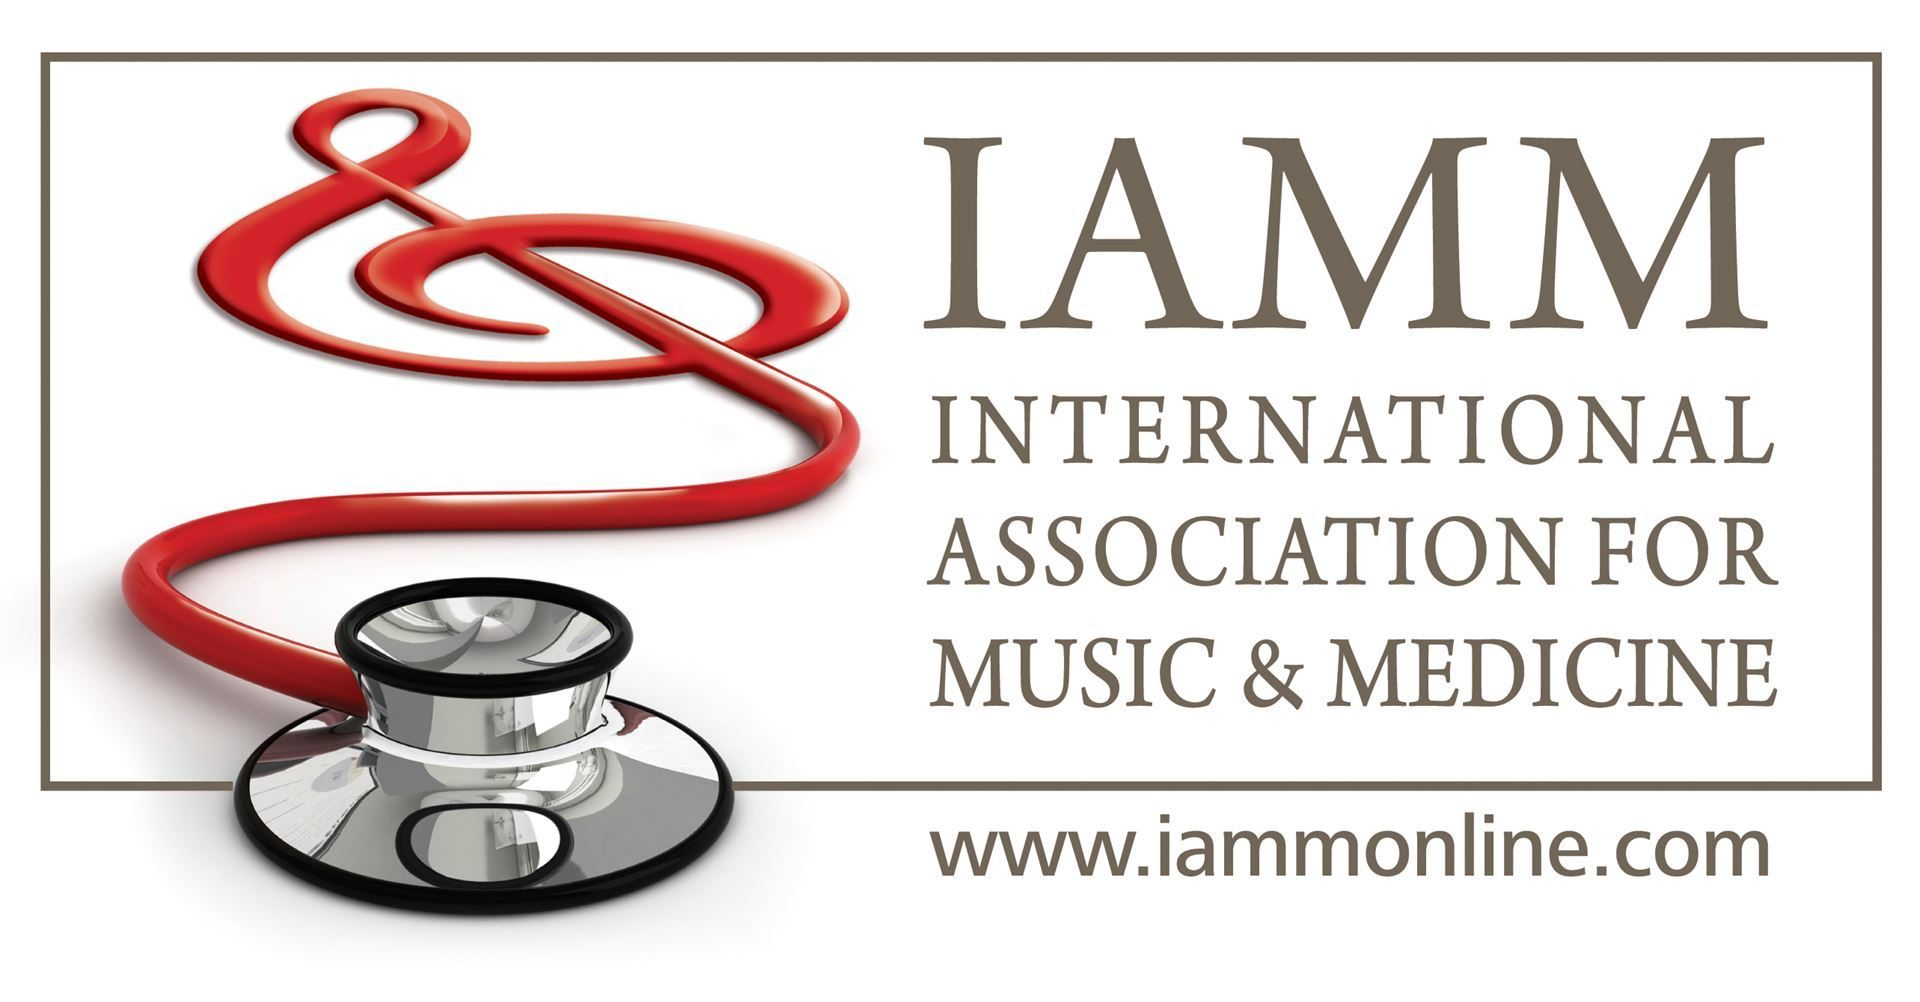 International Association for Music & Medicine